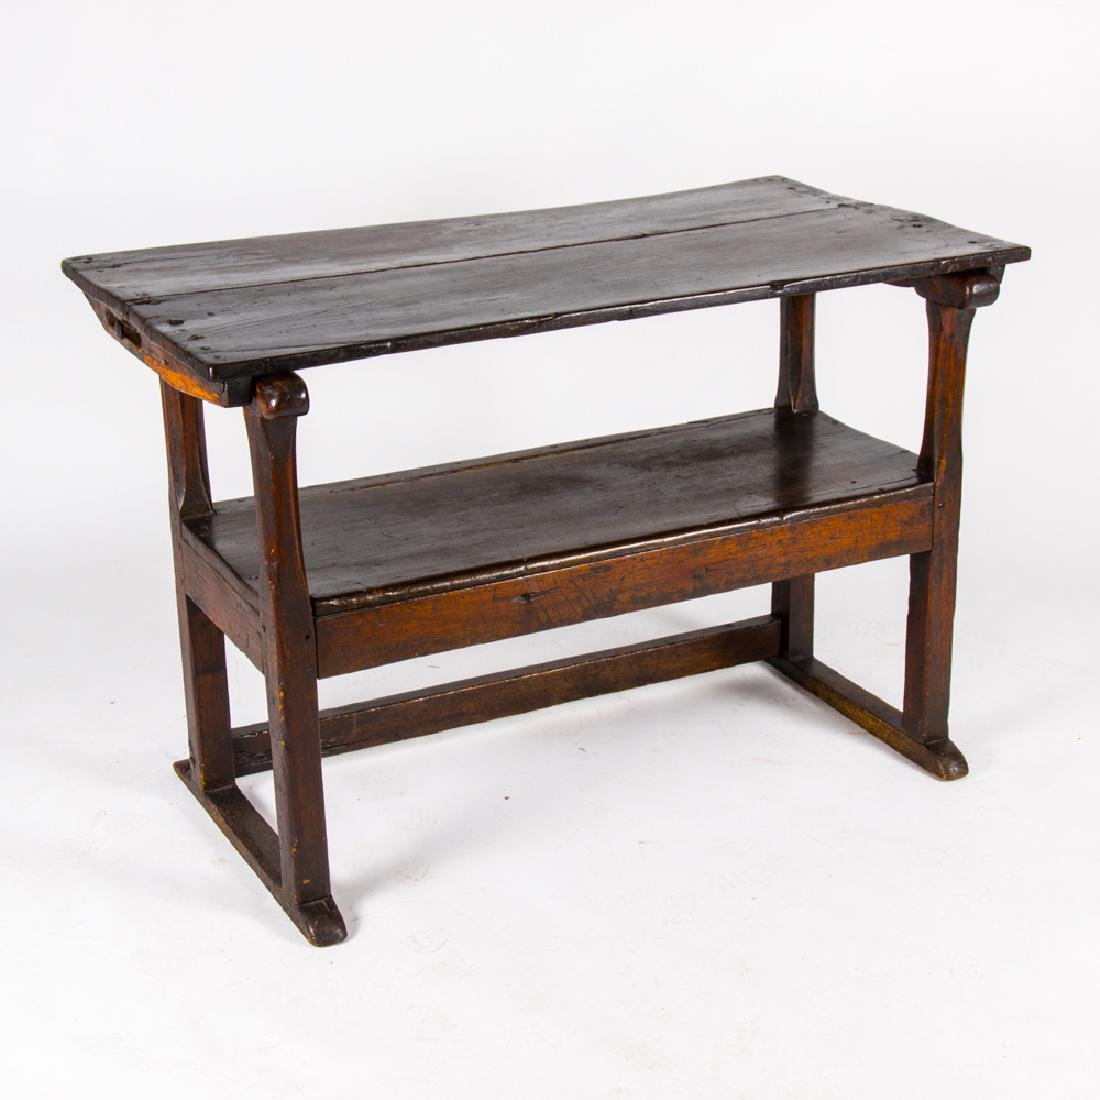 An English Oak Transforming Table to Bench, 18th